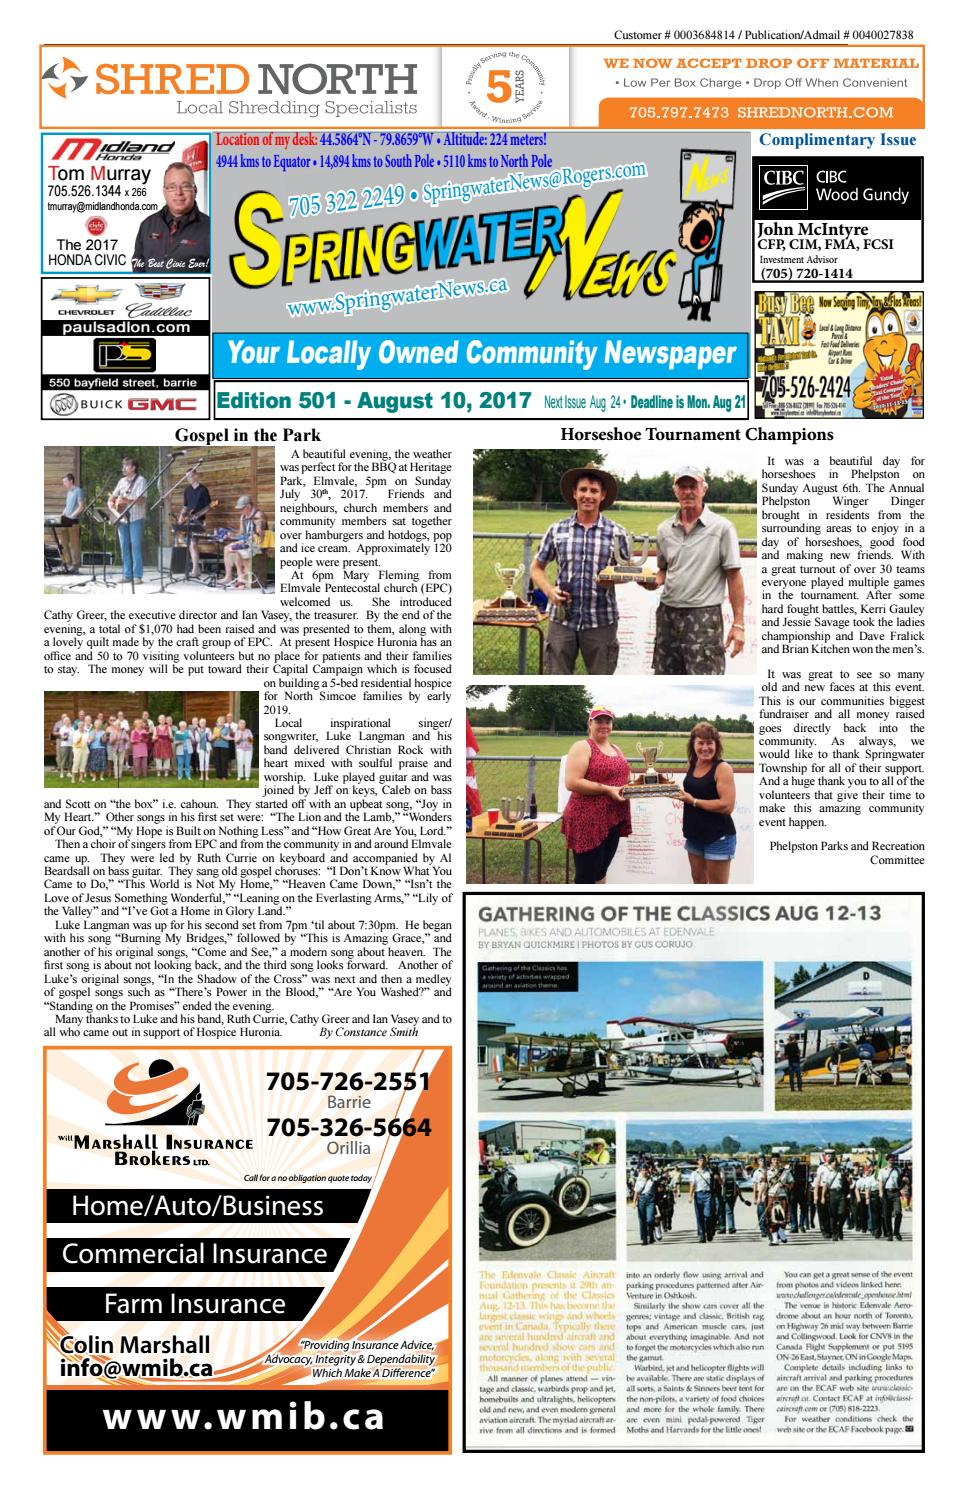 August 10 2017 edition 501 for web by Springwater News - issuu